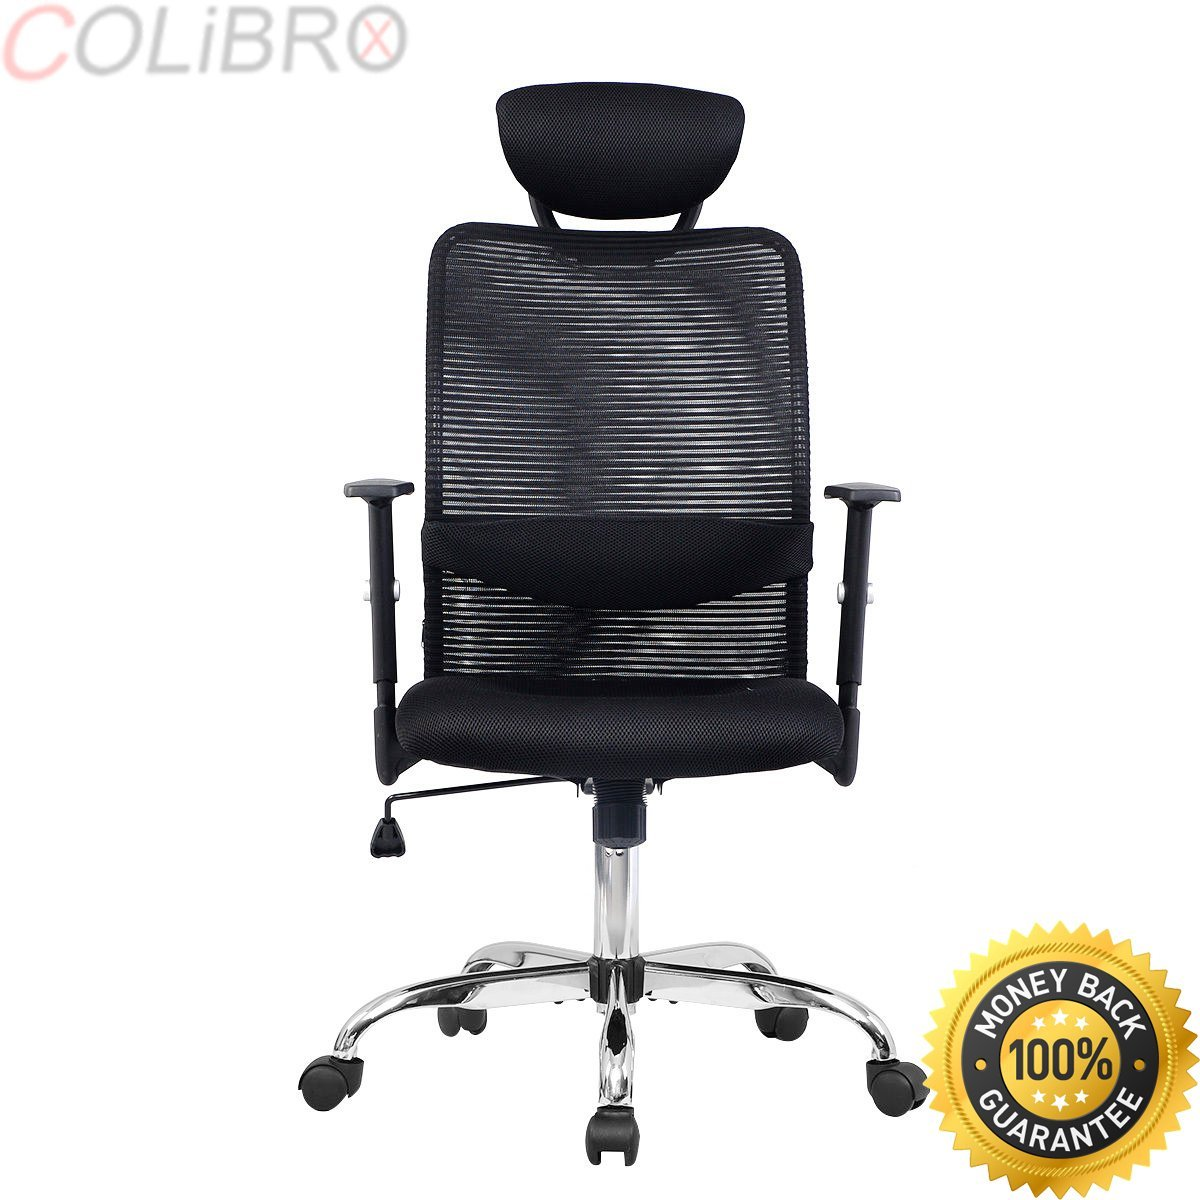 COLIBROX--Modern Ergonomic Mesh High Back Executive Computer Desk Task Office Chair Black. cheap office chairs. office chairs walmart. best ergonomic task chairs. black desk chair amazon.